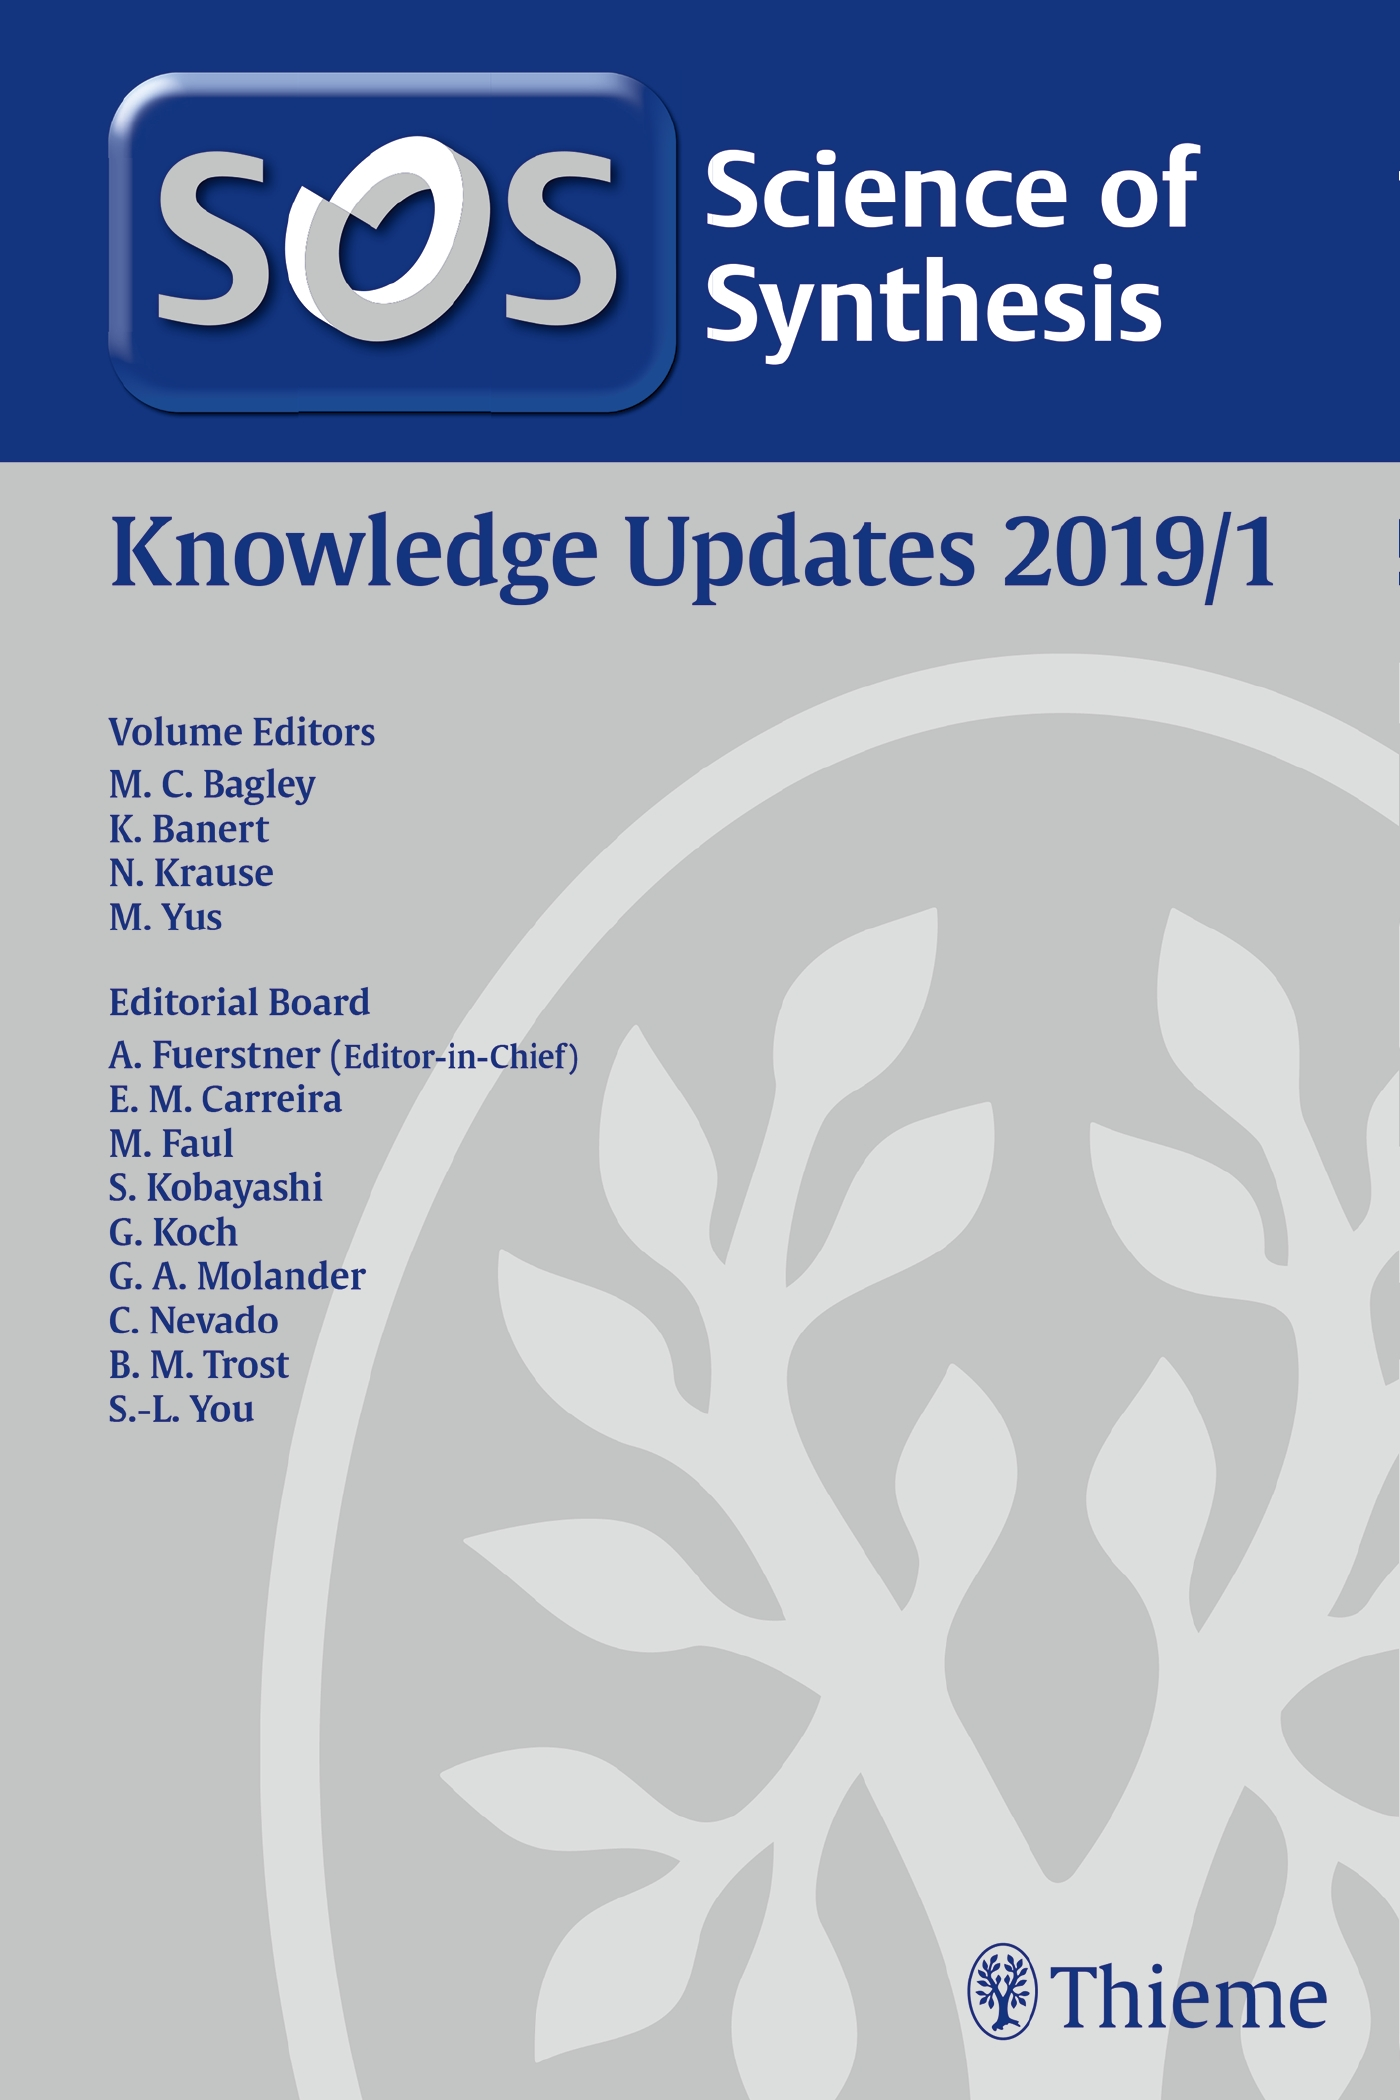 Science of Synthesis: Knowledge Updates 2019/1